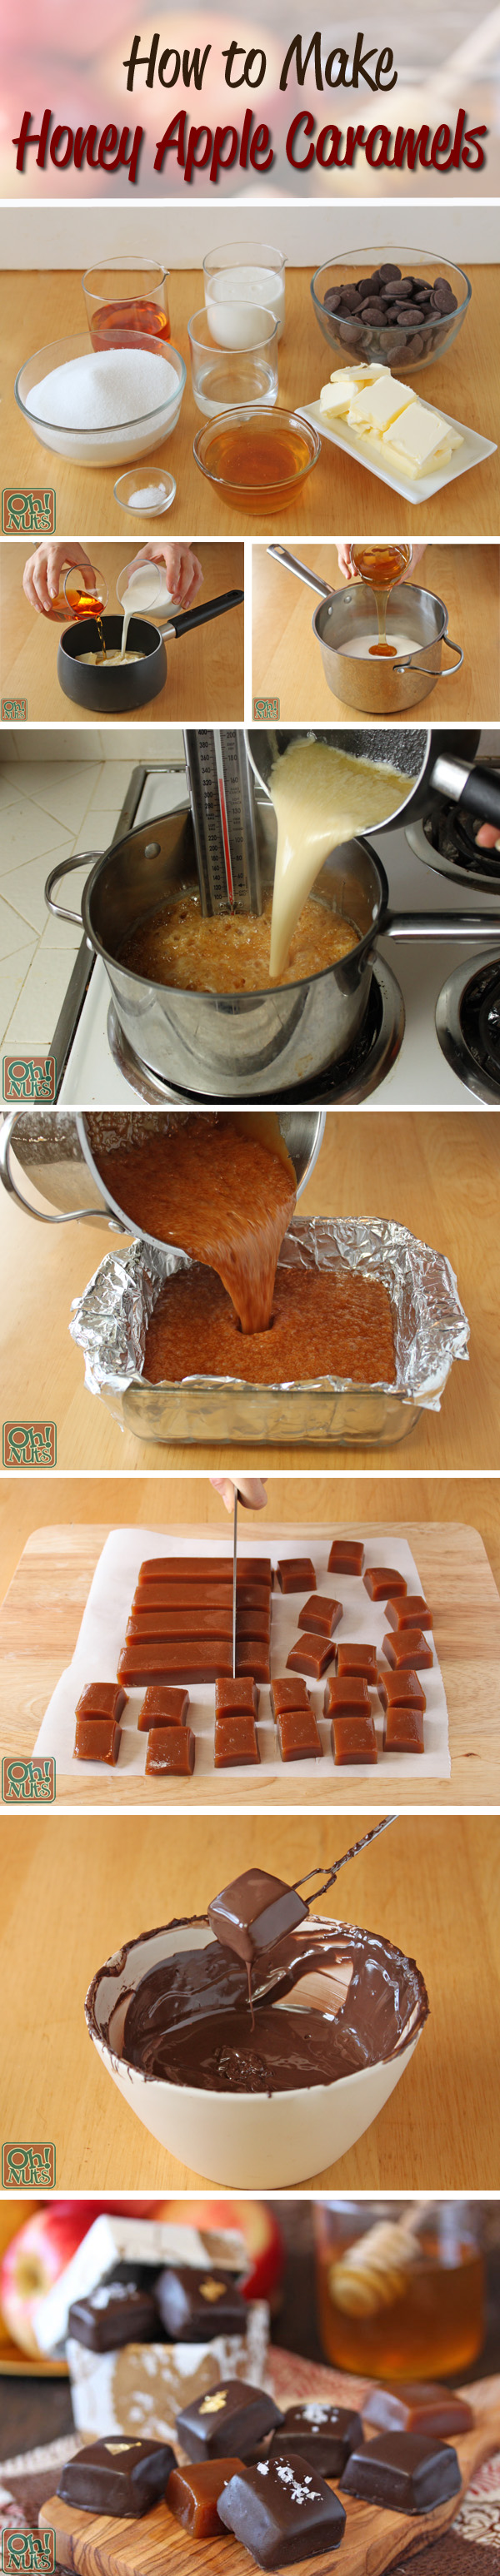 How to Make Honey Apple Caramels | OhNuts.com